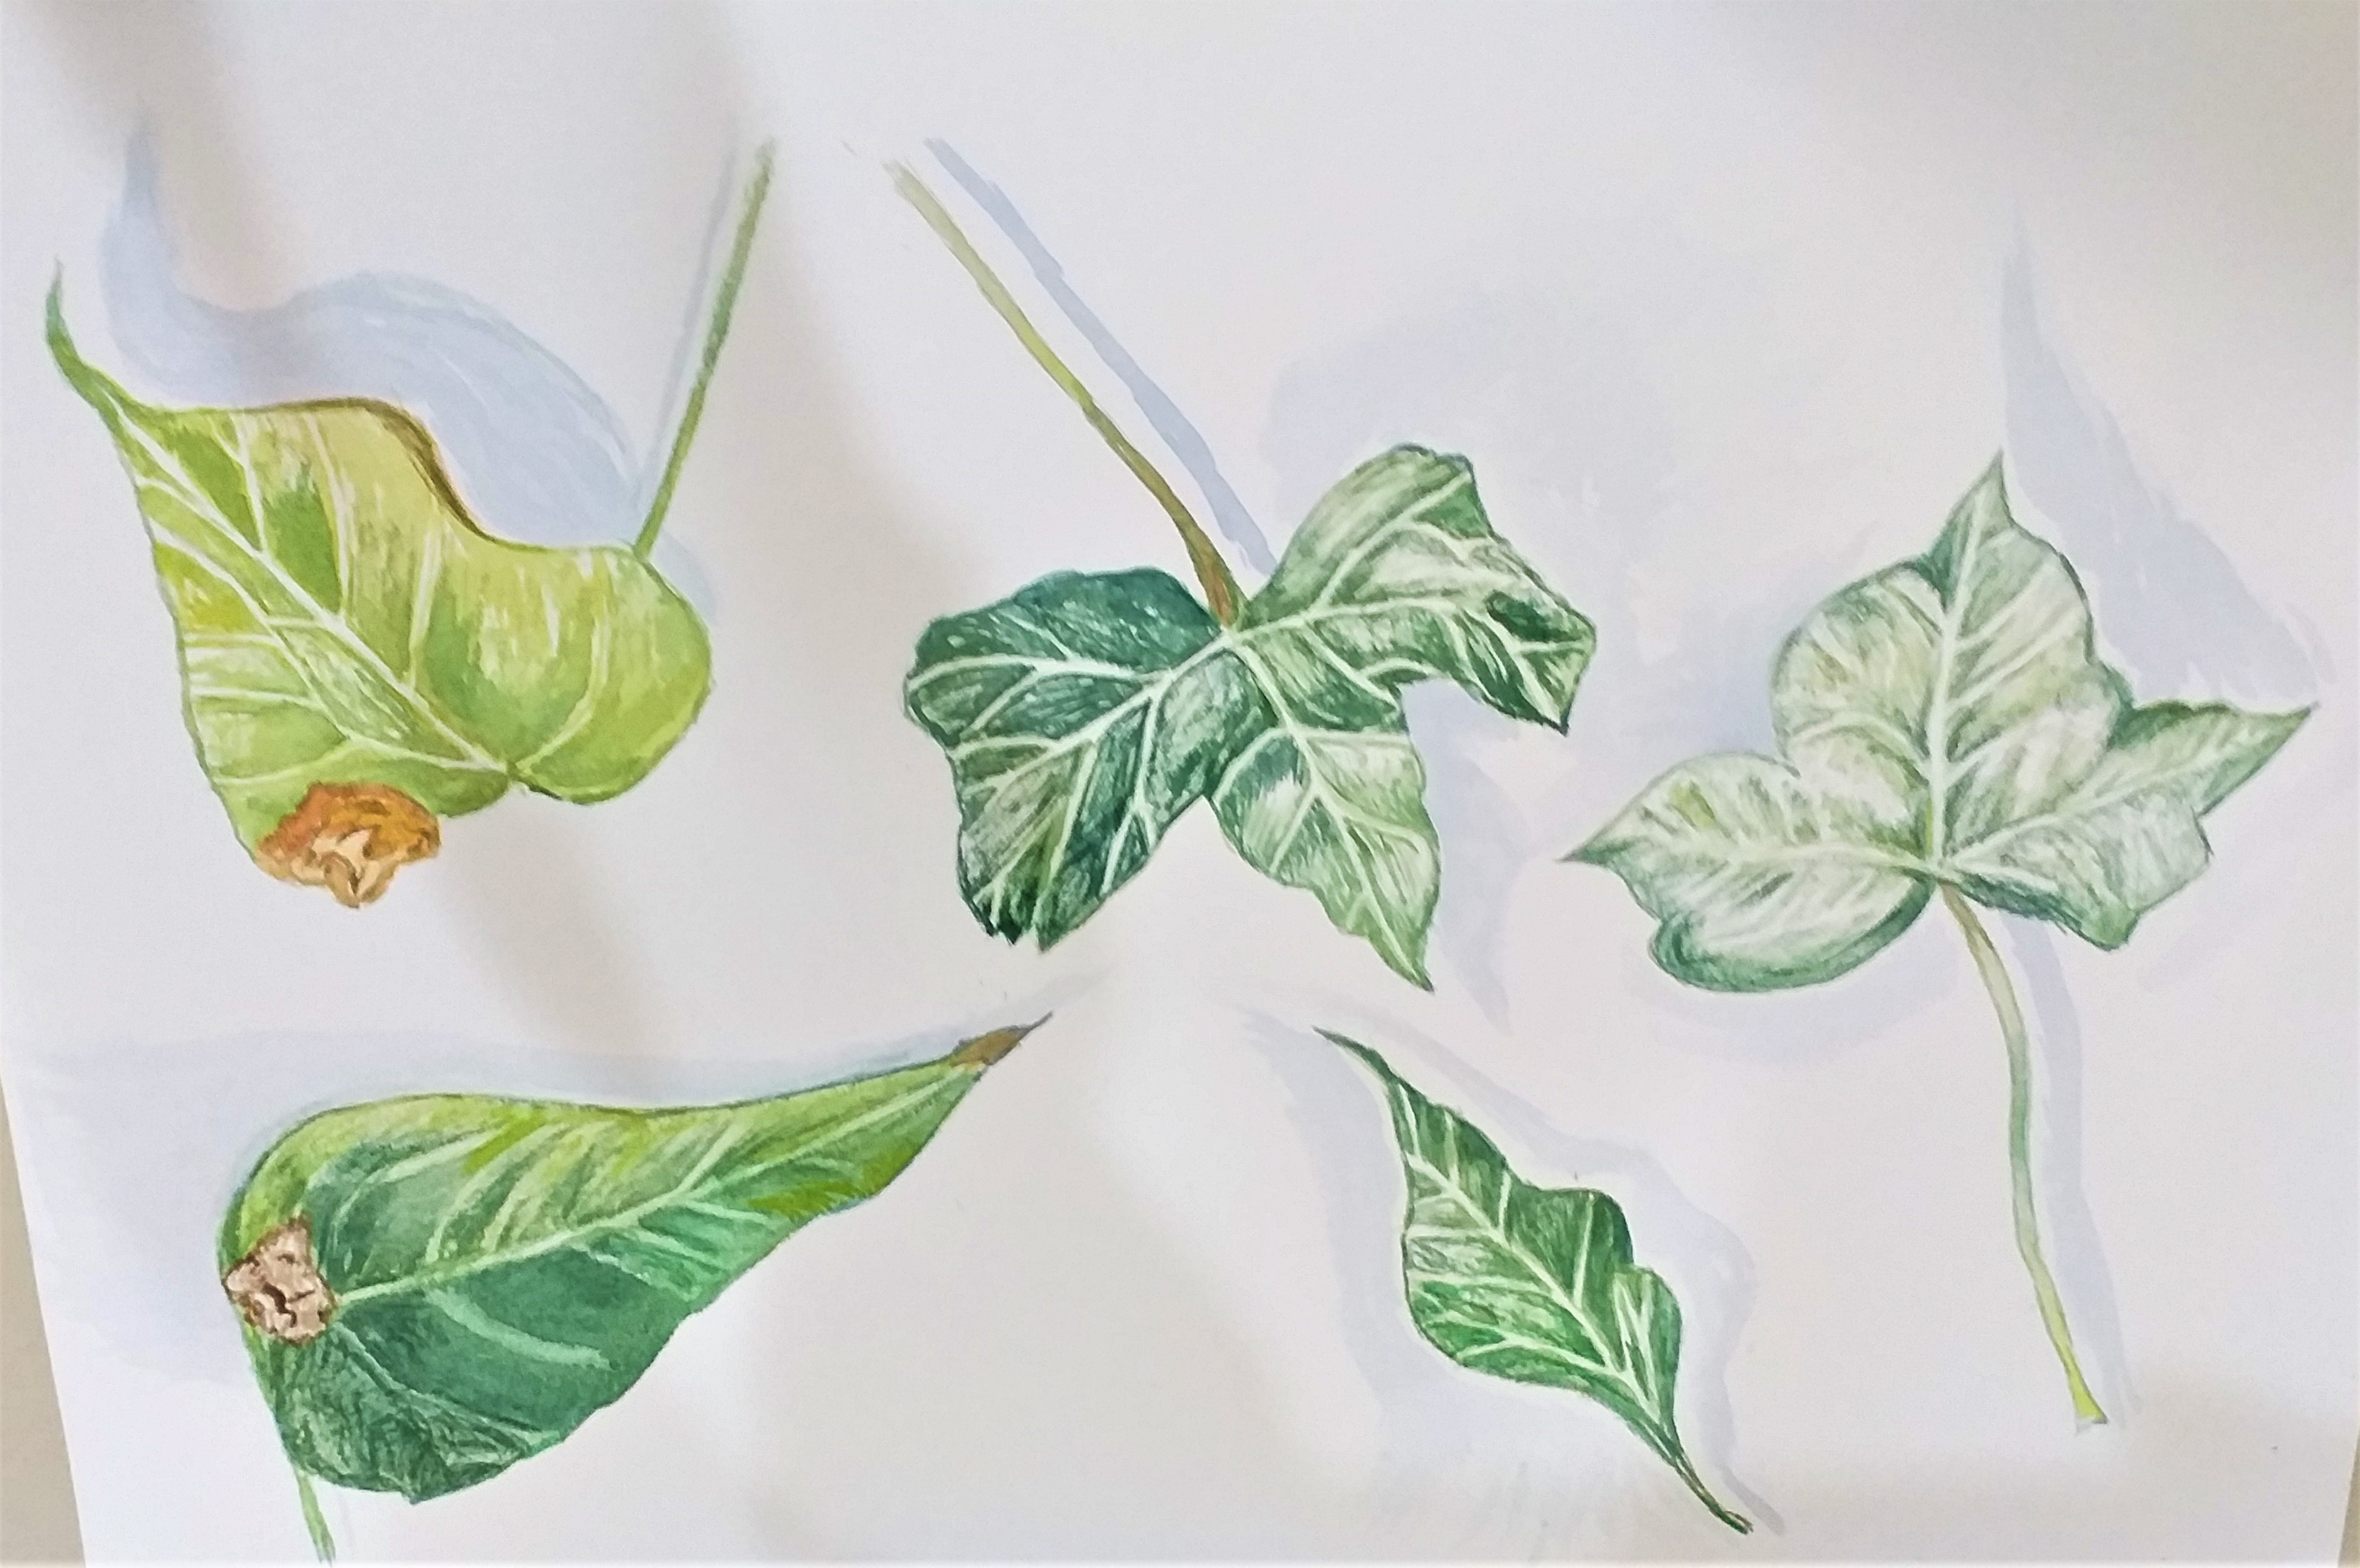 Deb's watercolour study of leaves created at Magic Wool Art and Craft Studio in Kidderminster.